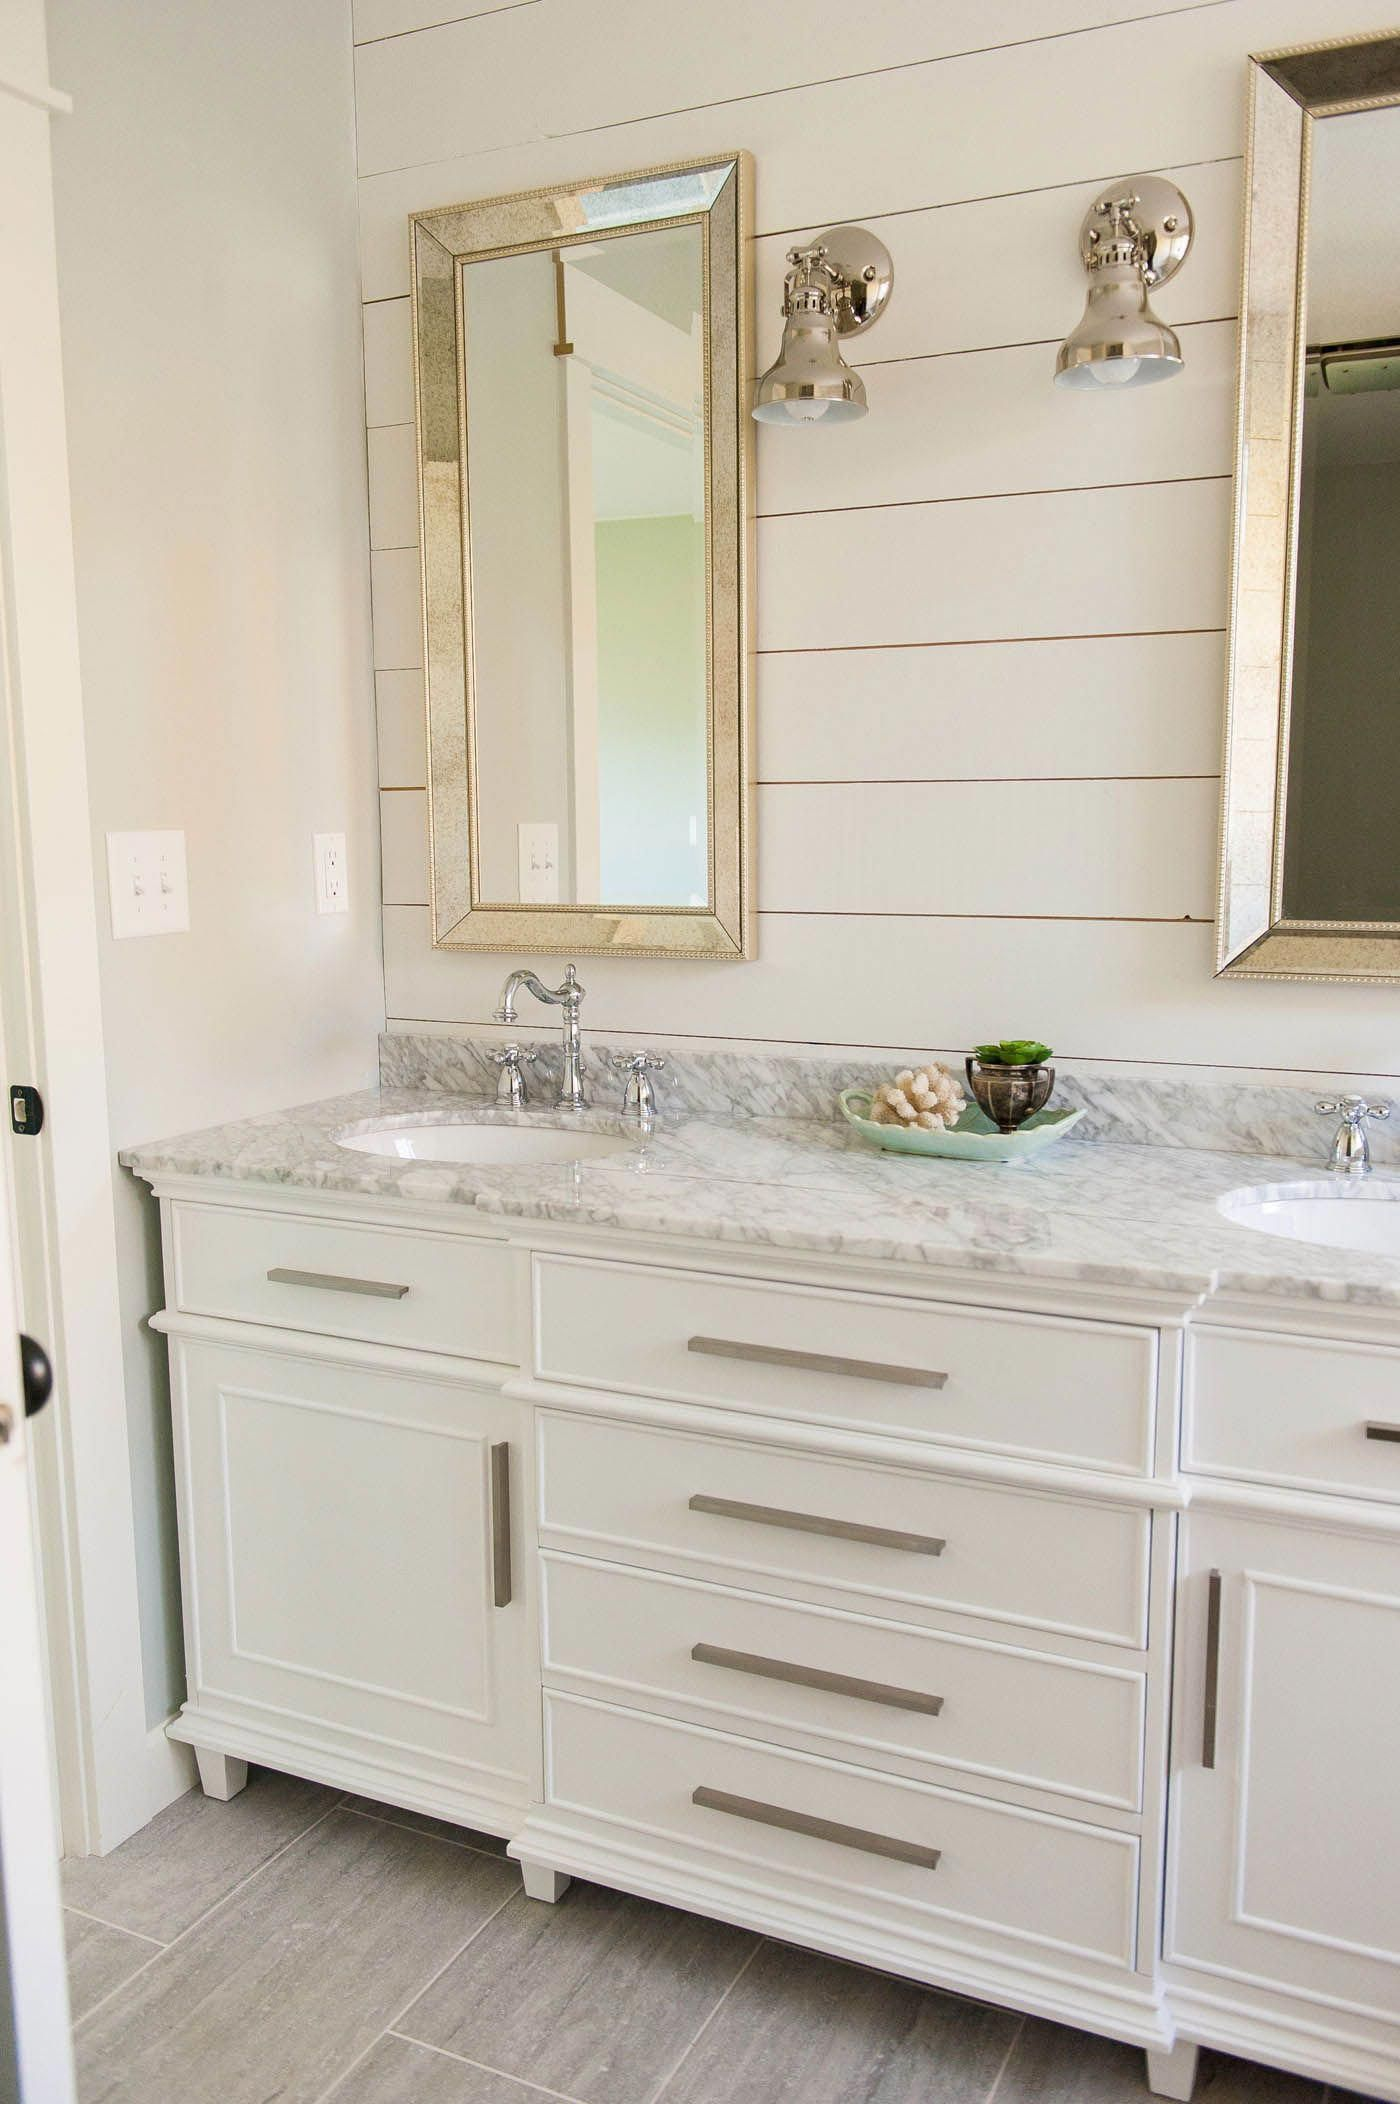 The Ultimate Guide To Buying A Bathroom Vanity Budget Bathroom Remodel Stylish Bathroom Bathrooms Remodel